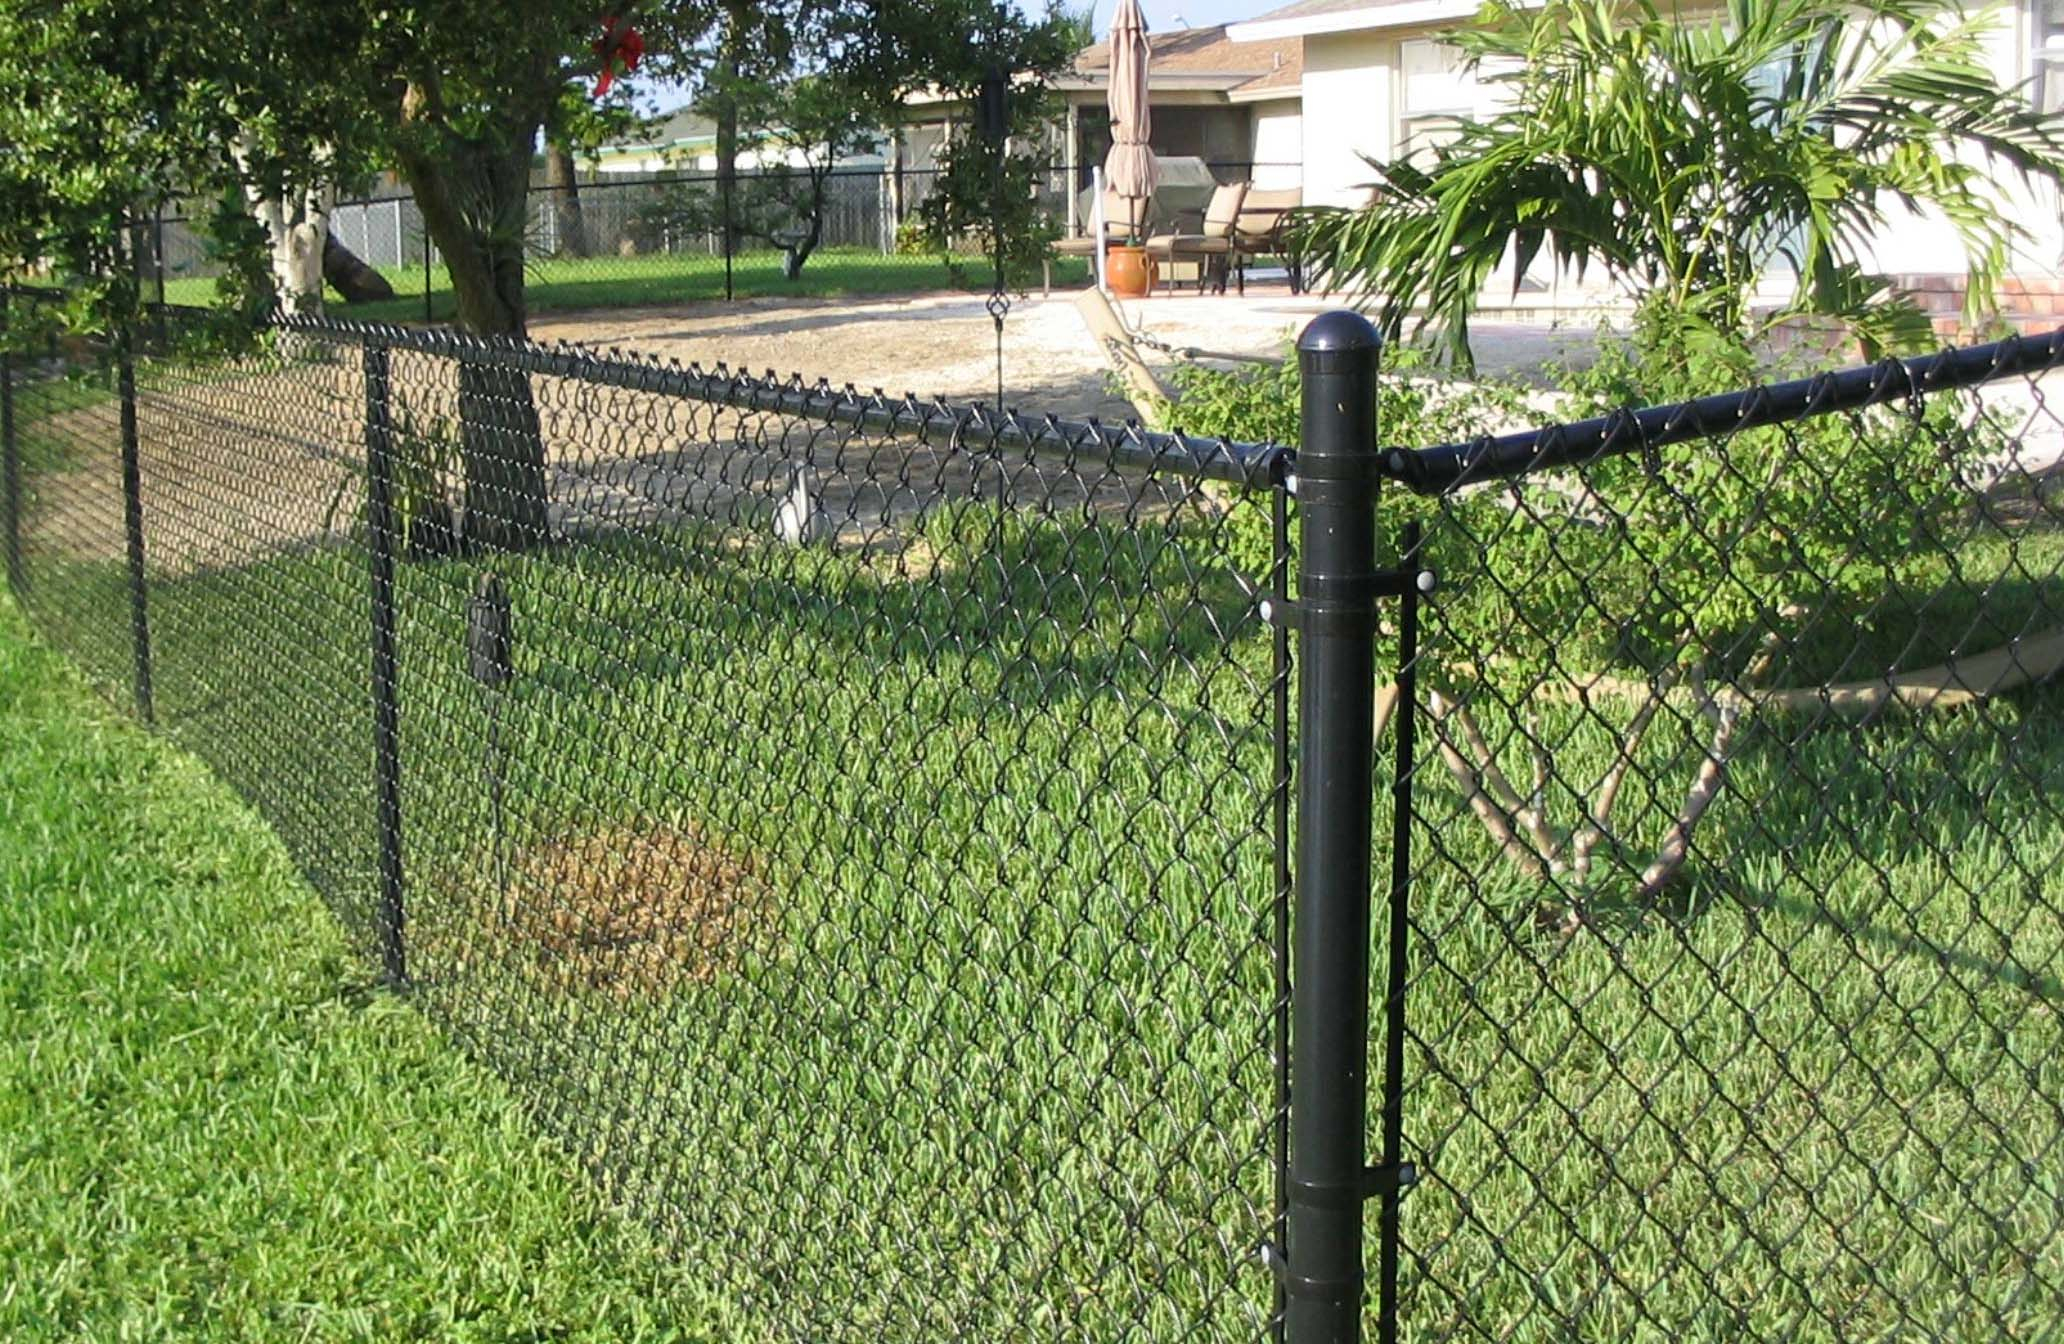 Chain Link Fence Buyers Guide Fence Center intended for proportions 2064 X 1344